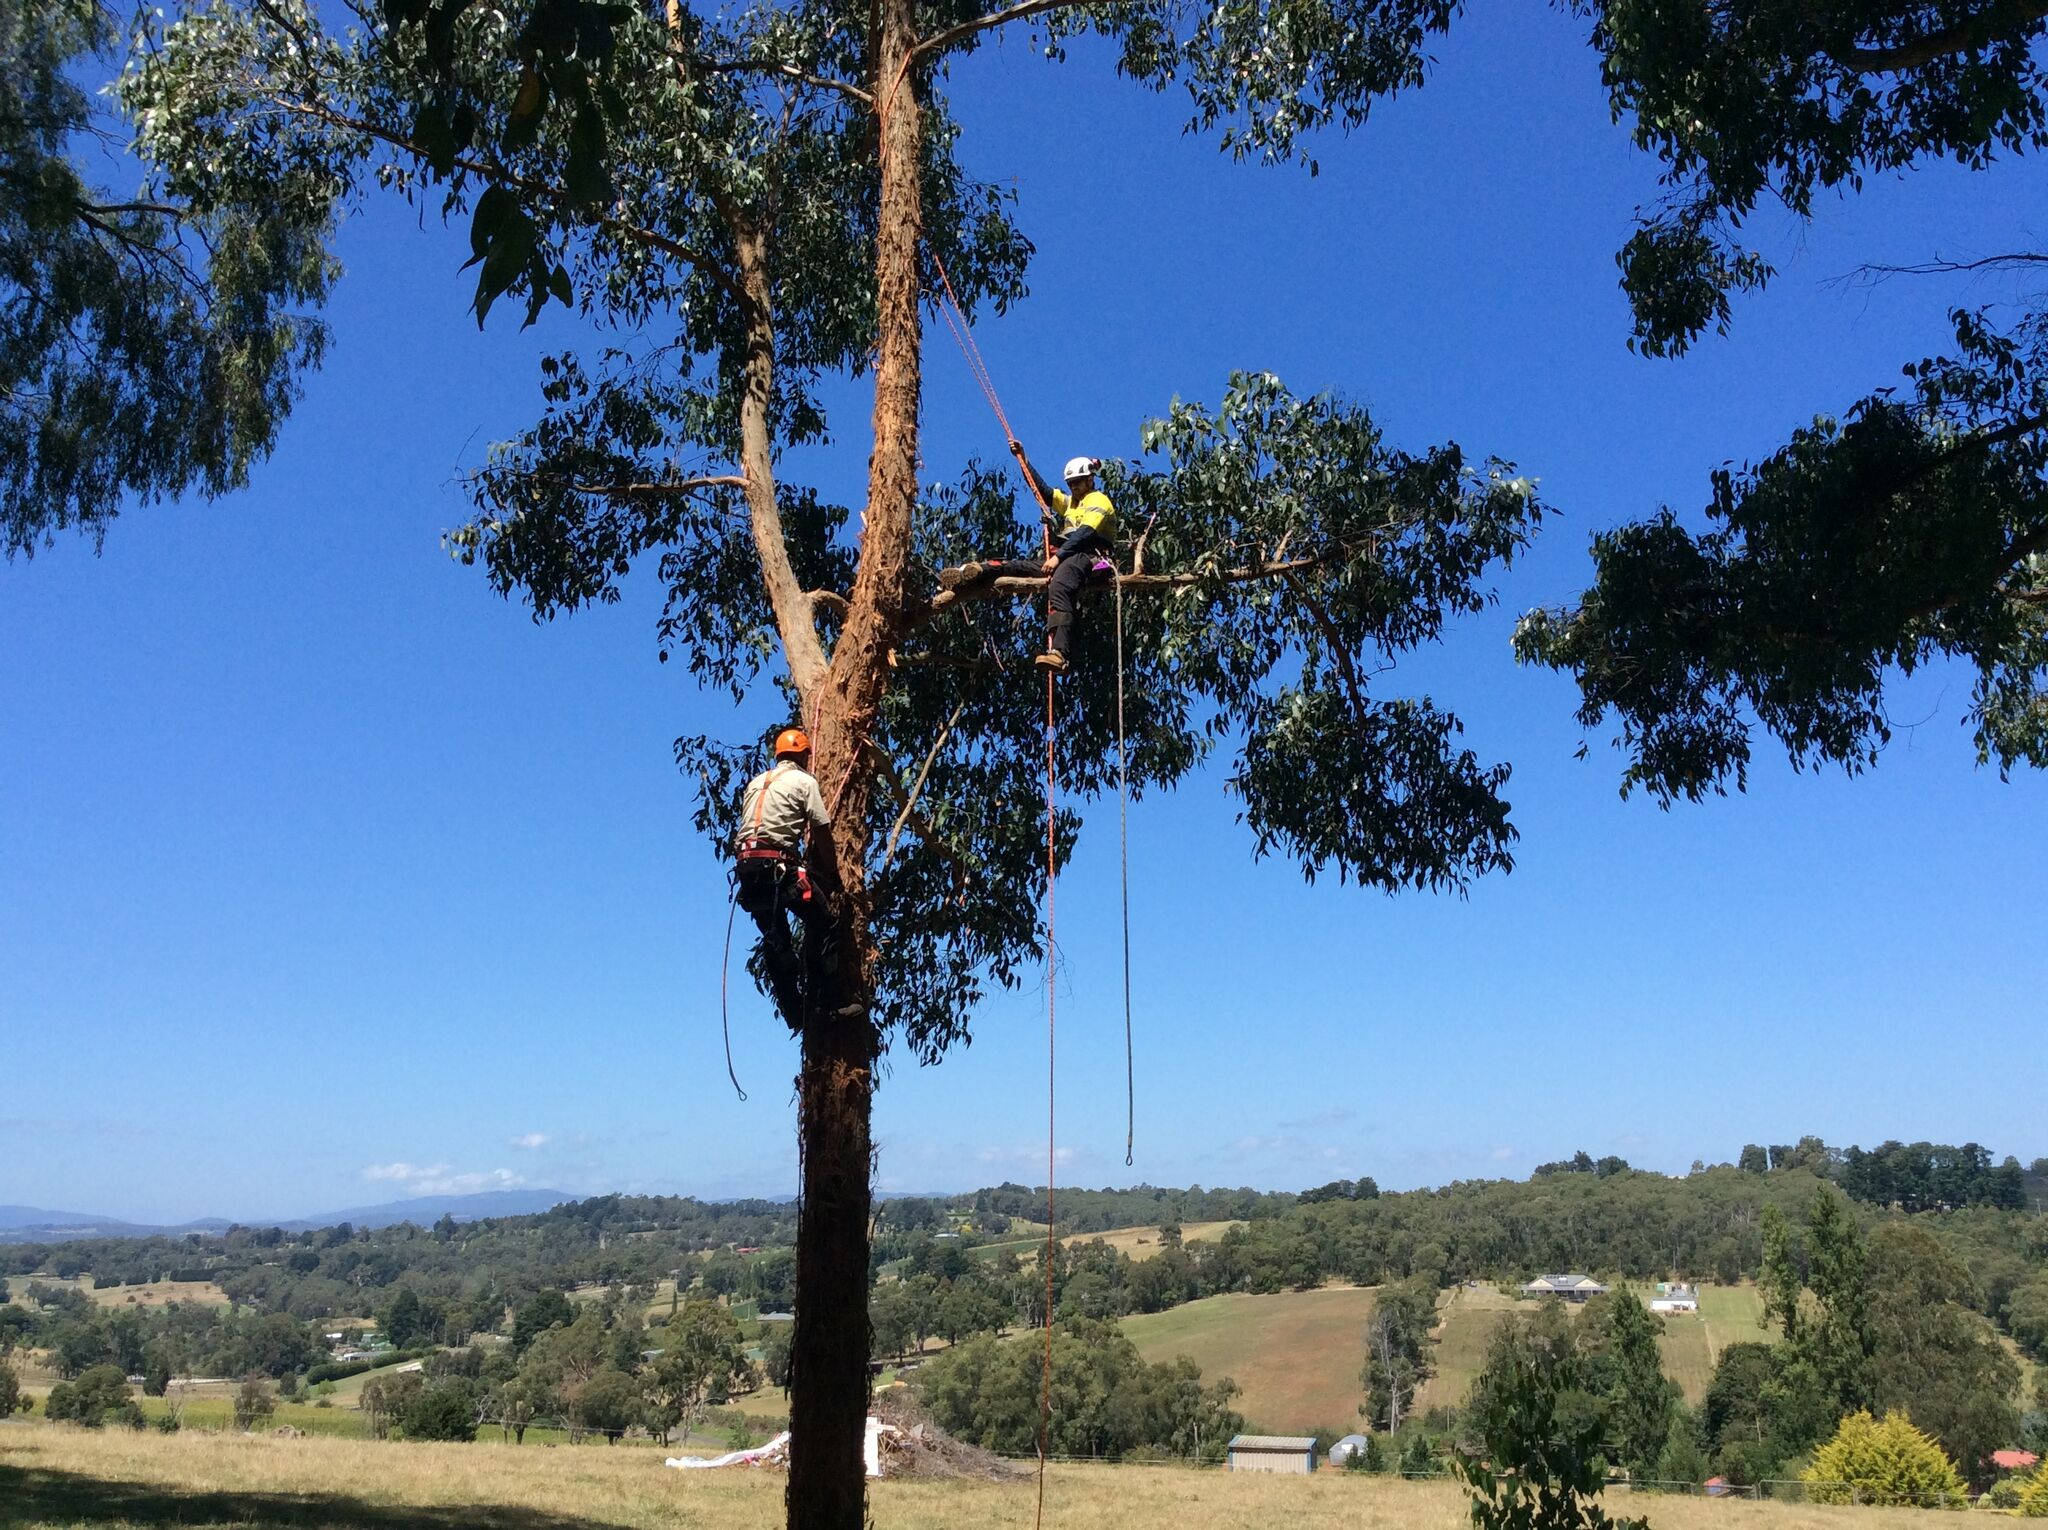 AHC30816 Certificate III in Arboriculture - Prepare arborists for the care and management of trees in conservation and tree preservation roles, tree climbing, tree maintenance, and the diverse operations of professional tree management and urban forestry